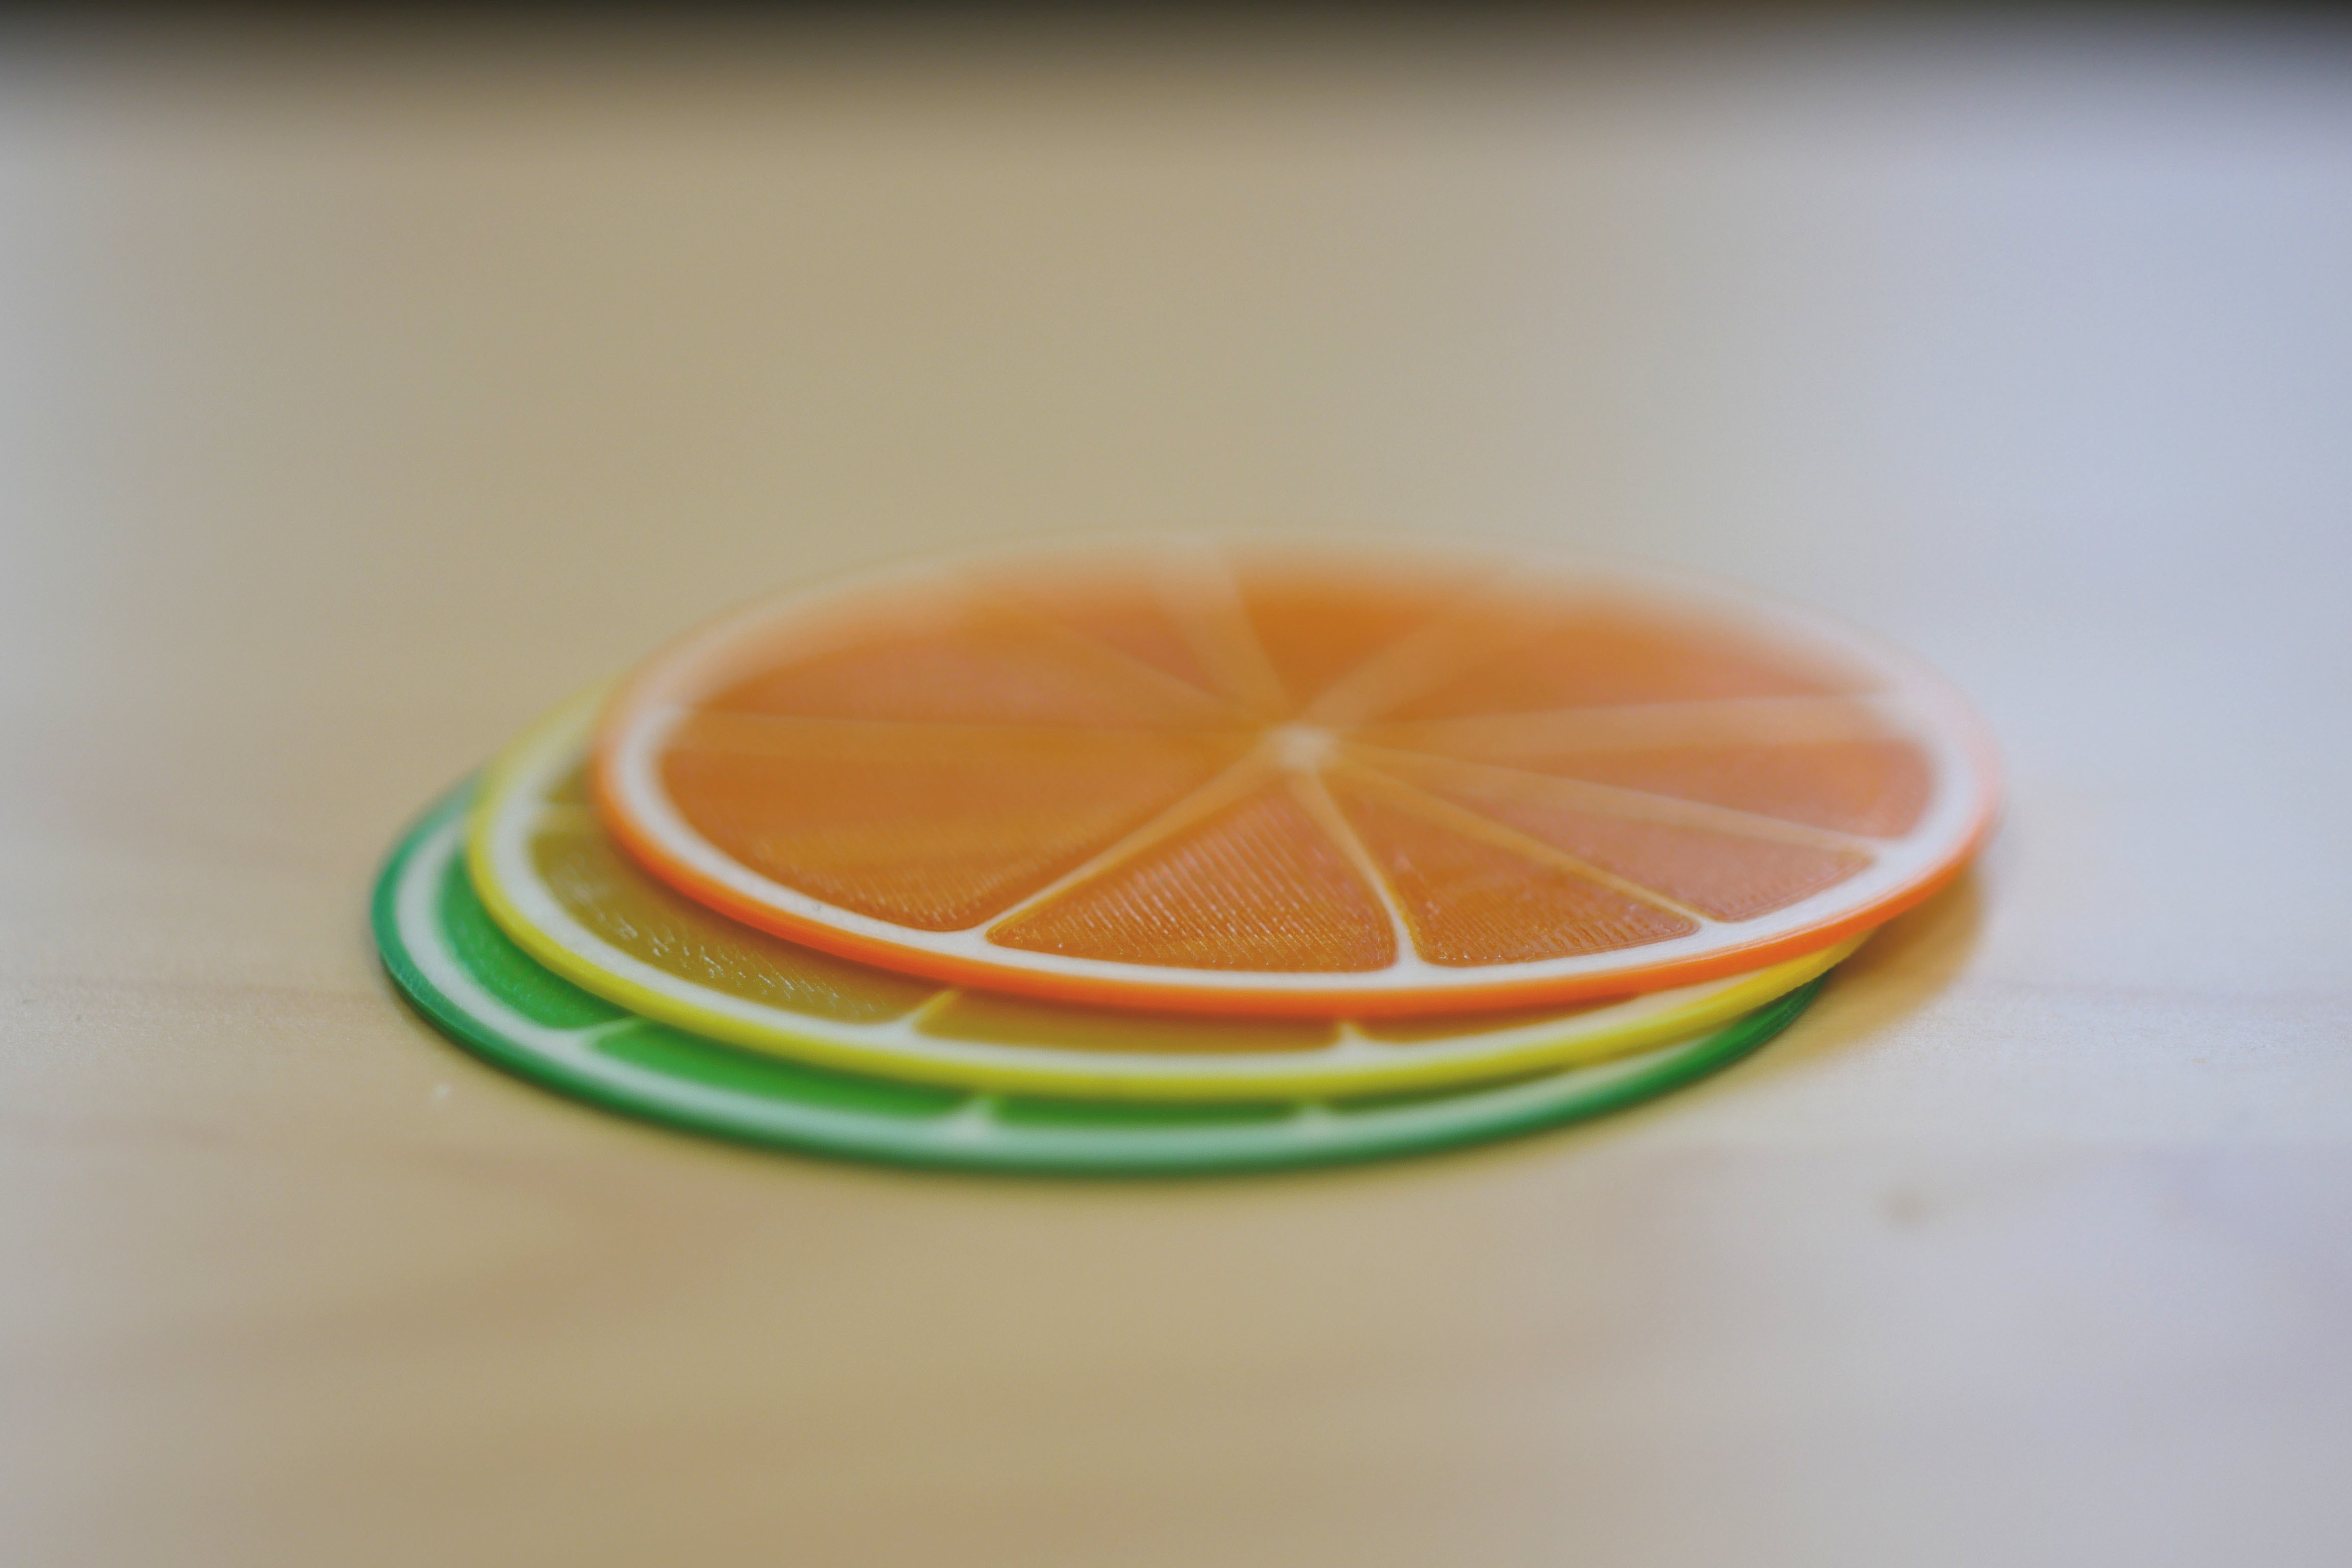 citrus slices 3.jpg Download free STL file Citrus Coasters • 3D printing model, MosaicManufacturing